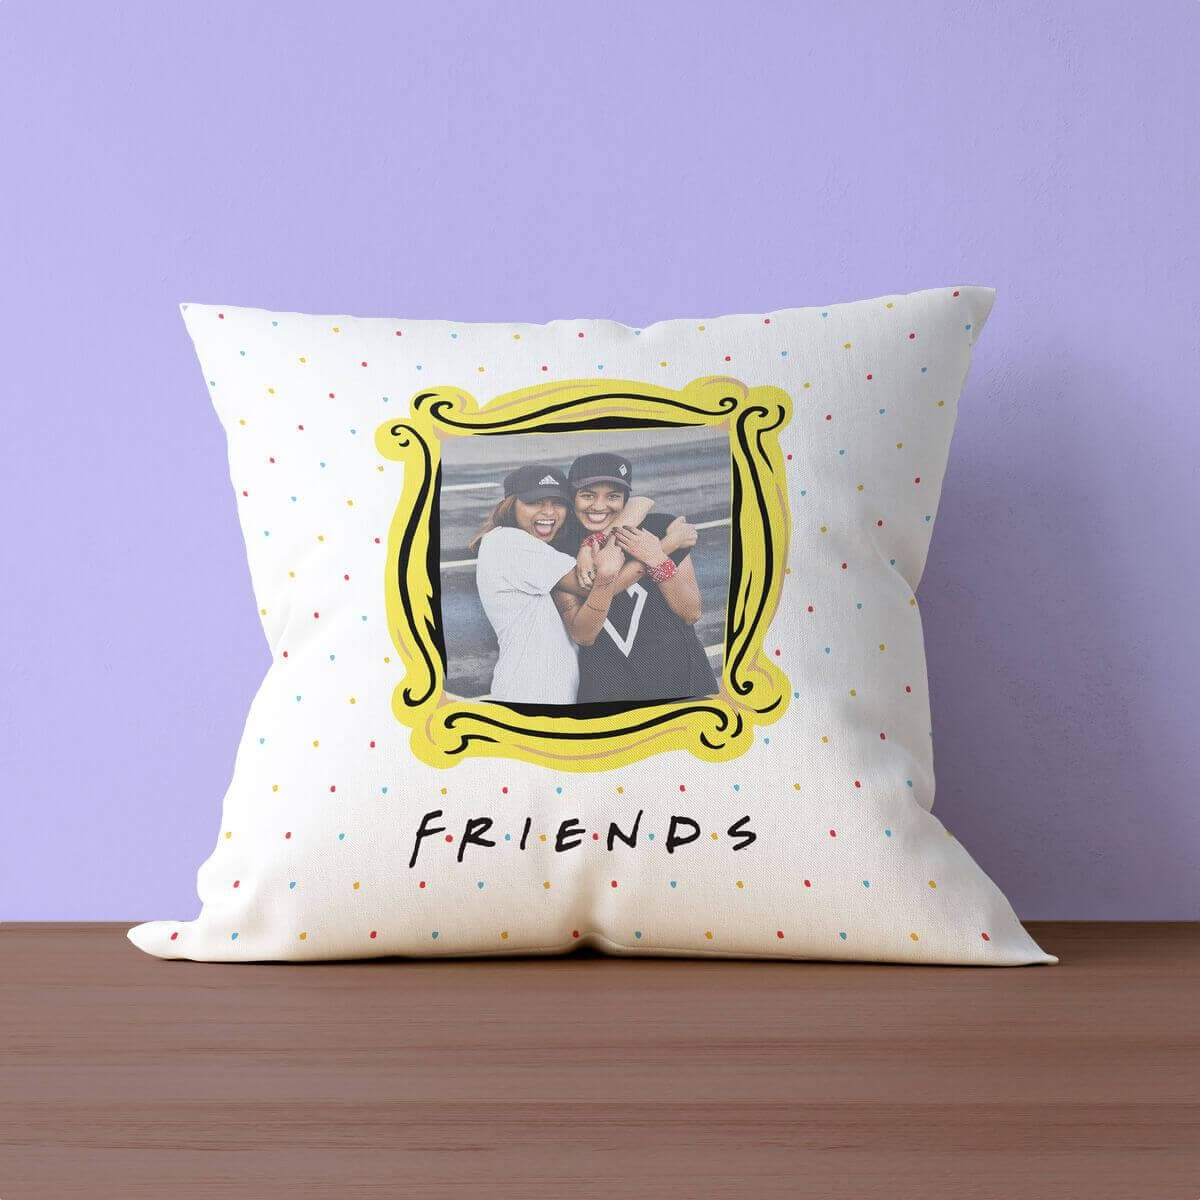 Personalised Friends™ Cushion